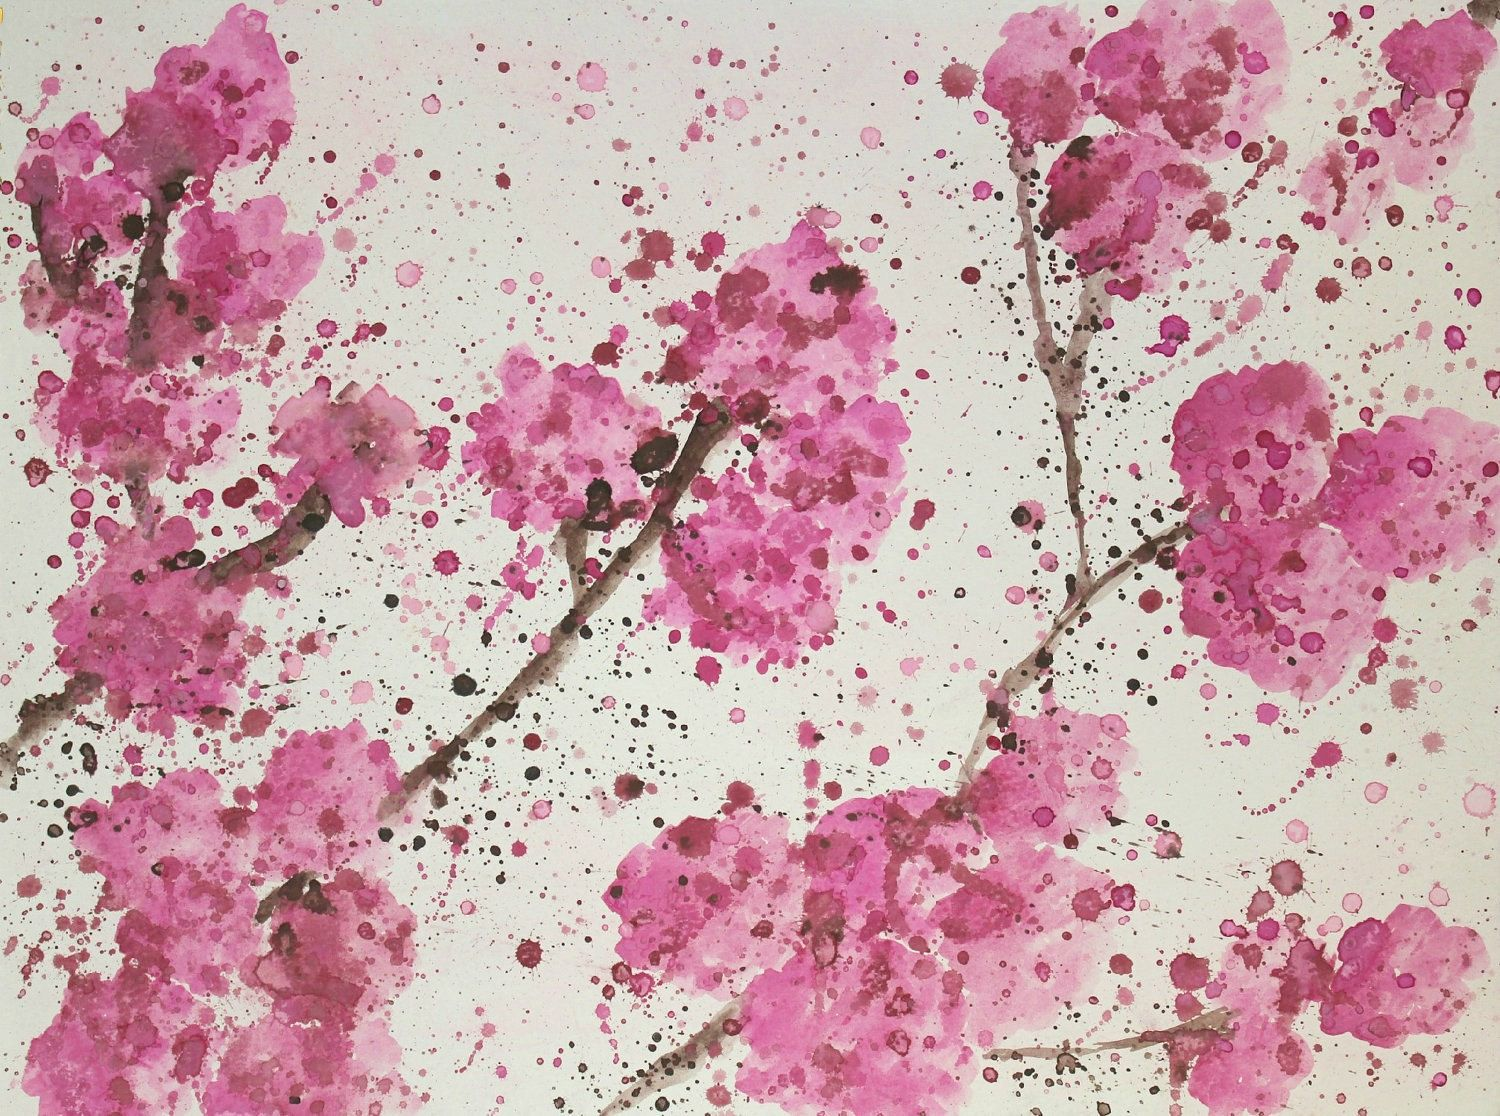 Cherry Blossoms Abstract Watercolor Painting Cherry Blossom